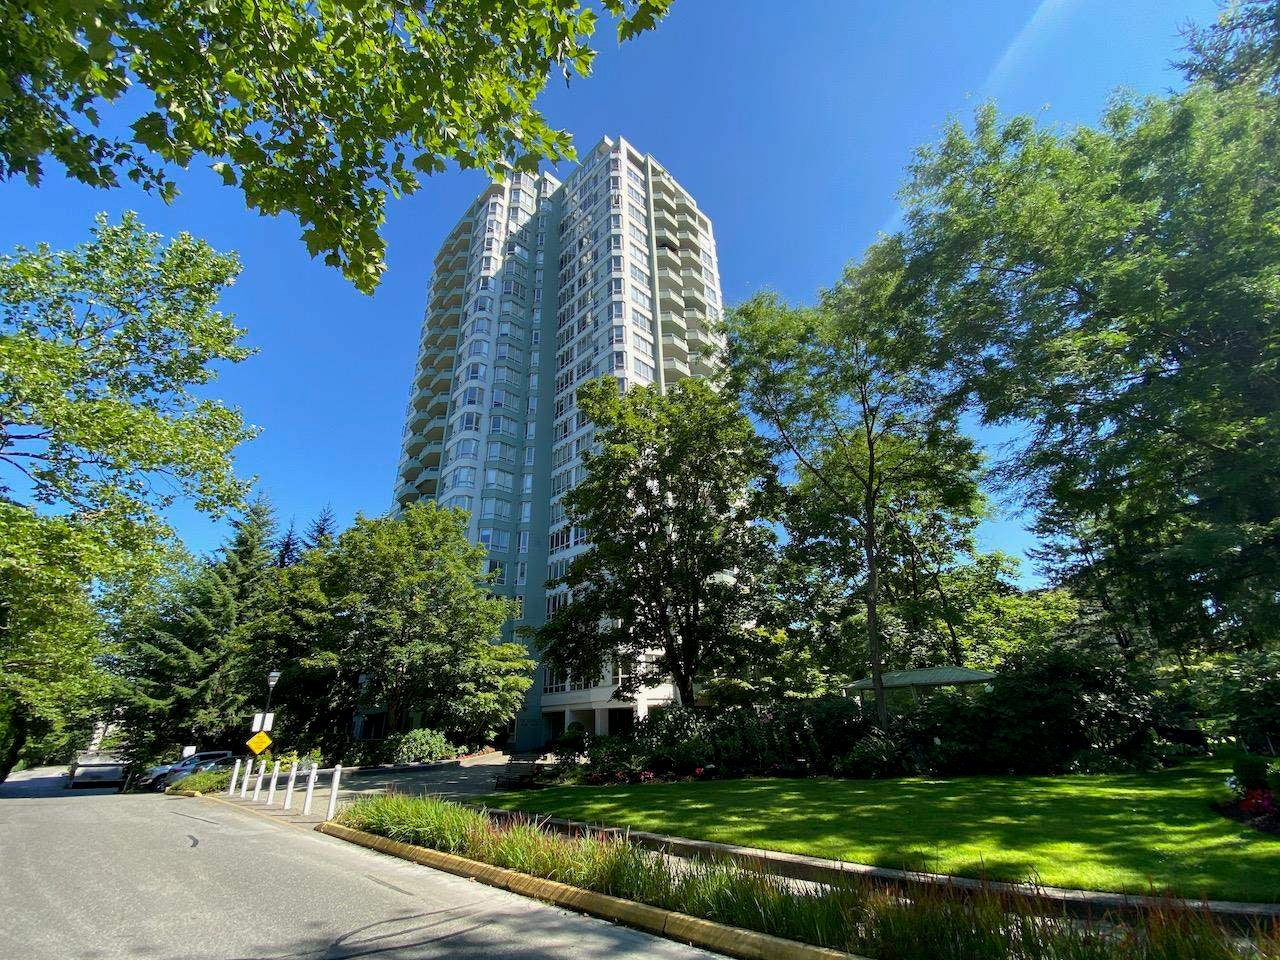 1801 10082 148 STREET - Guildford Apartment/Condo for sale, 1 Bedroom (R2603671)